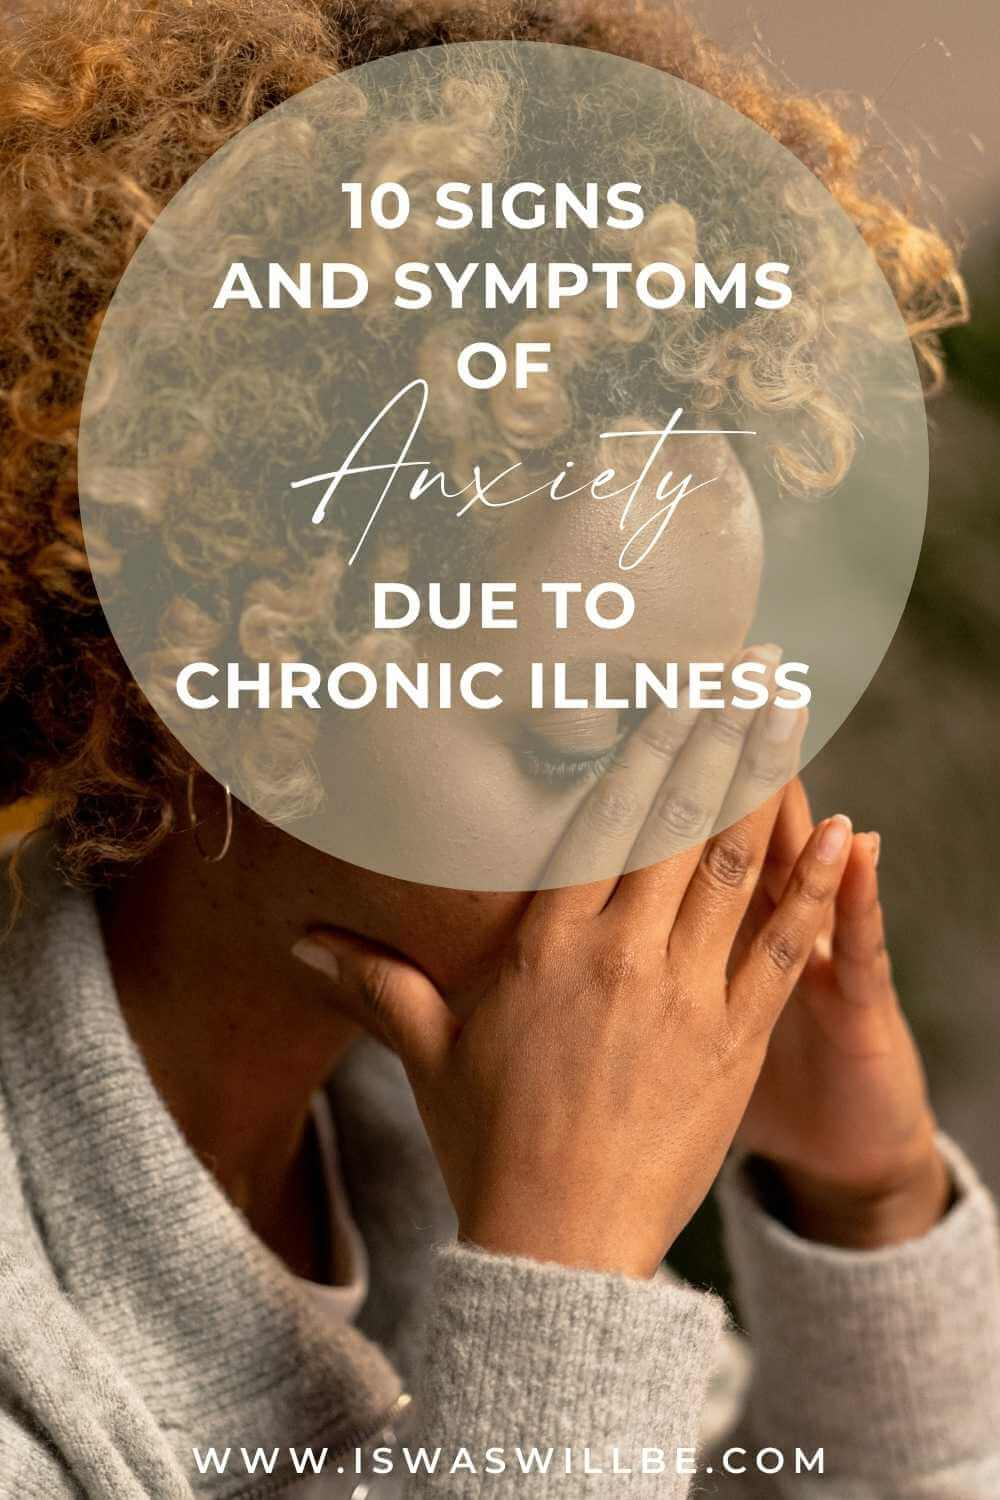 10 Signs of anxiety due to chronic illness